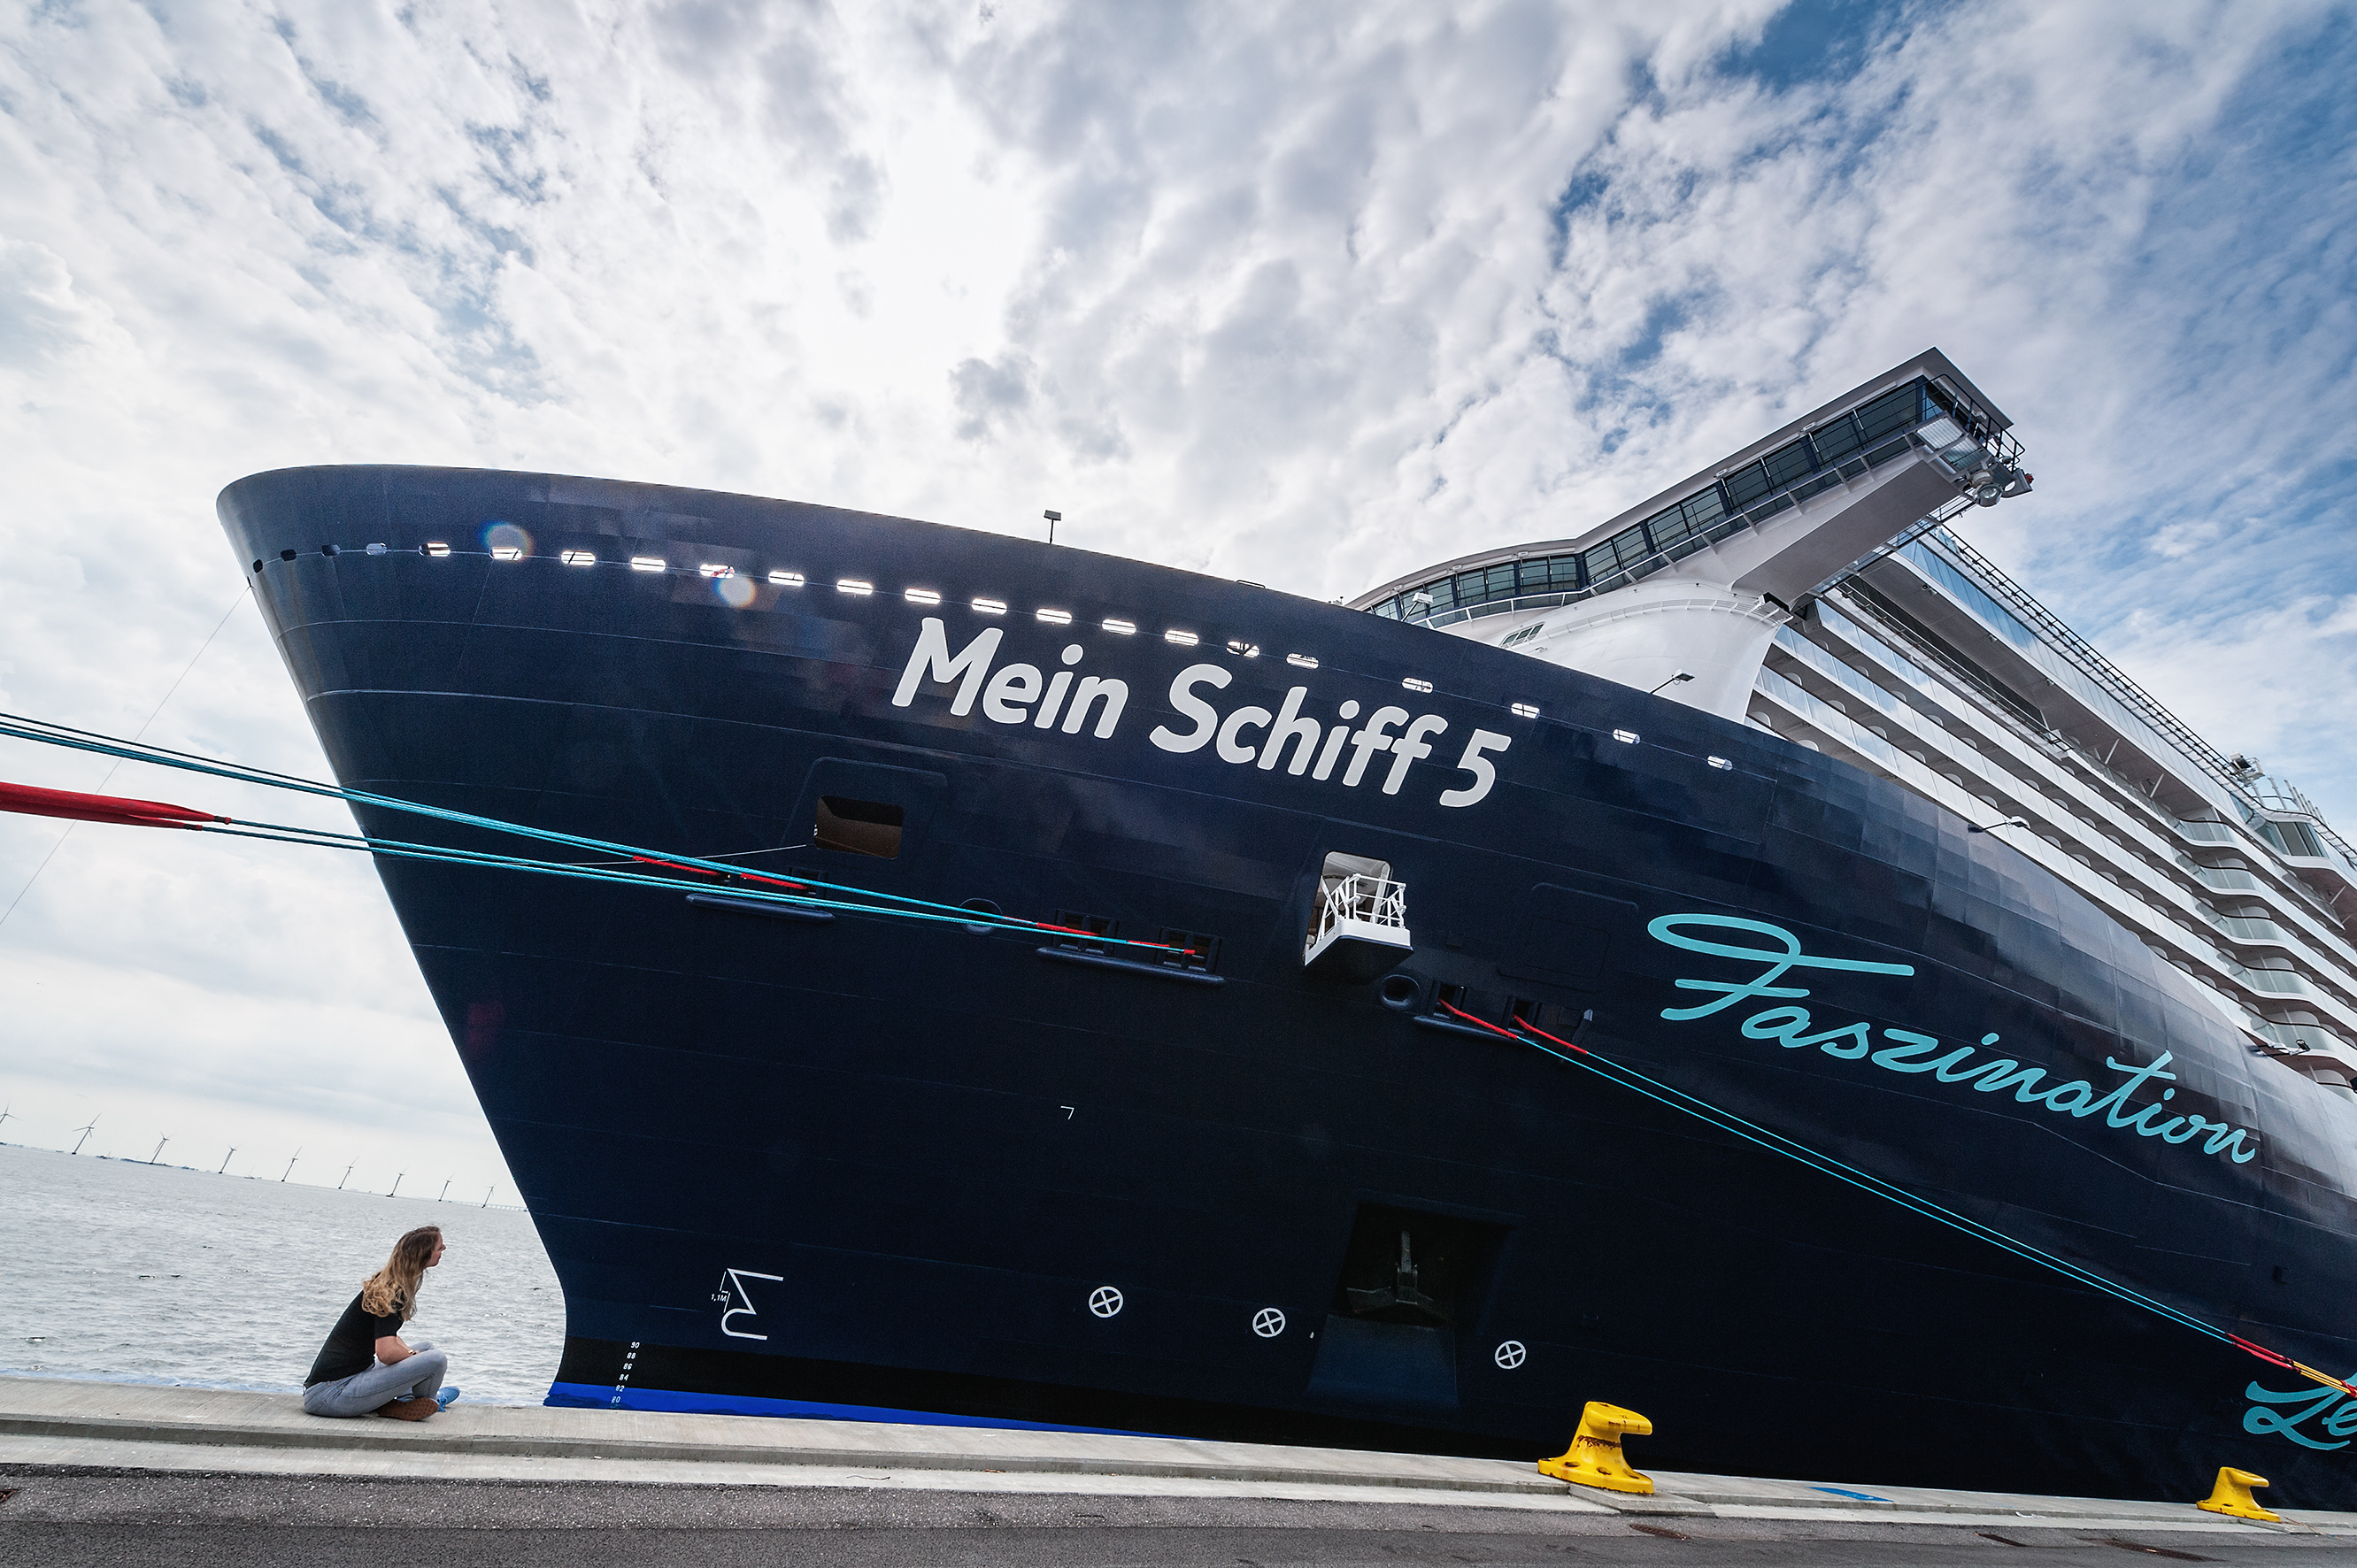 On assignment with TUI Cruiseship MeinSchiff 5